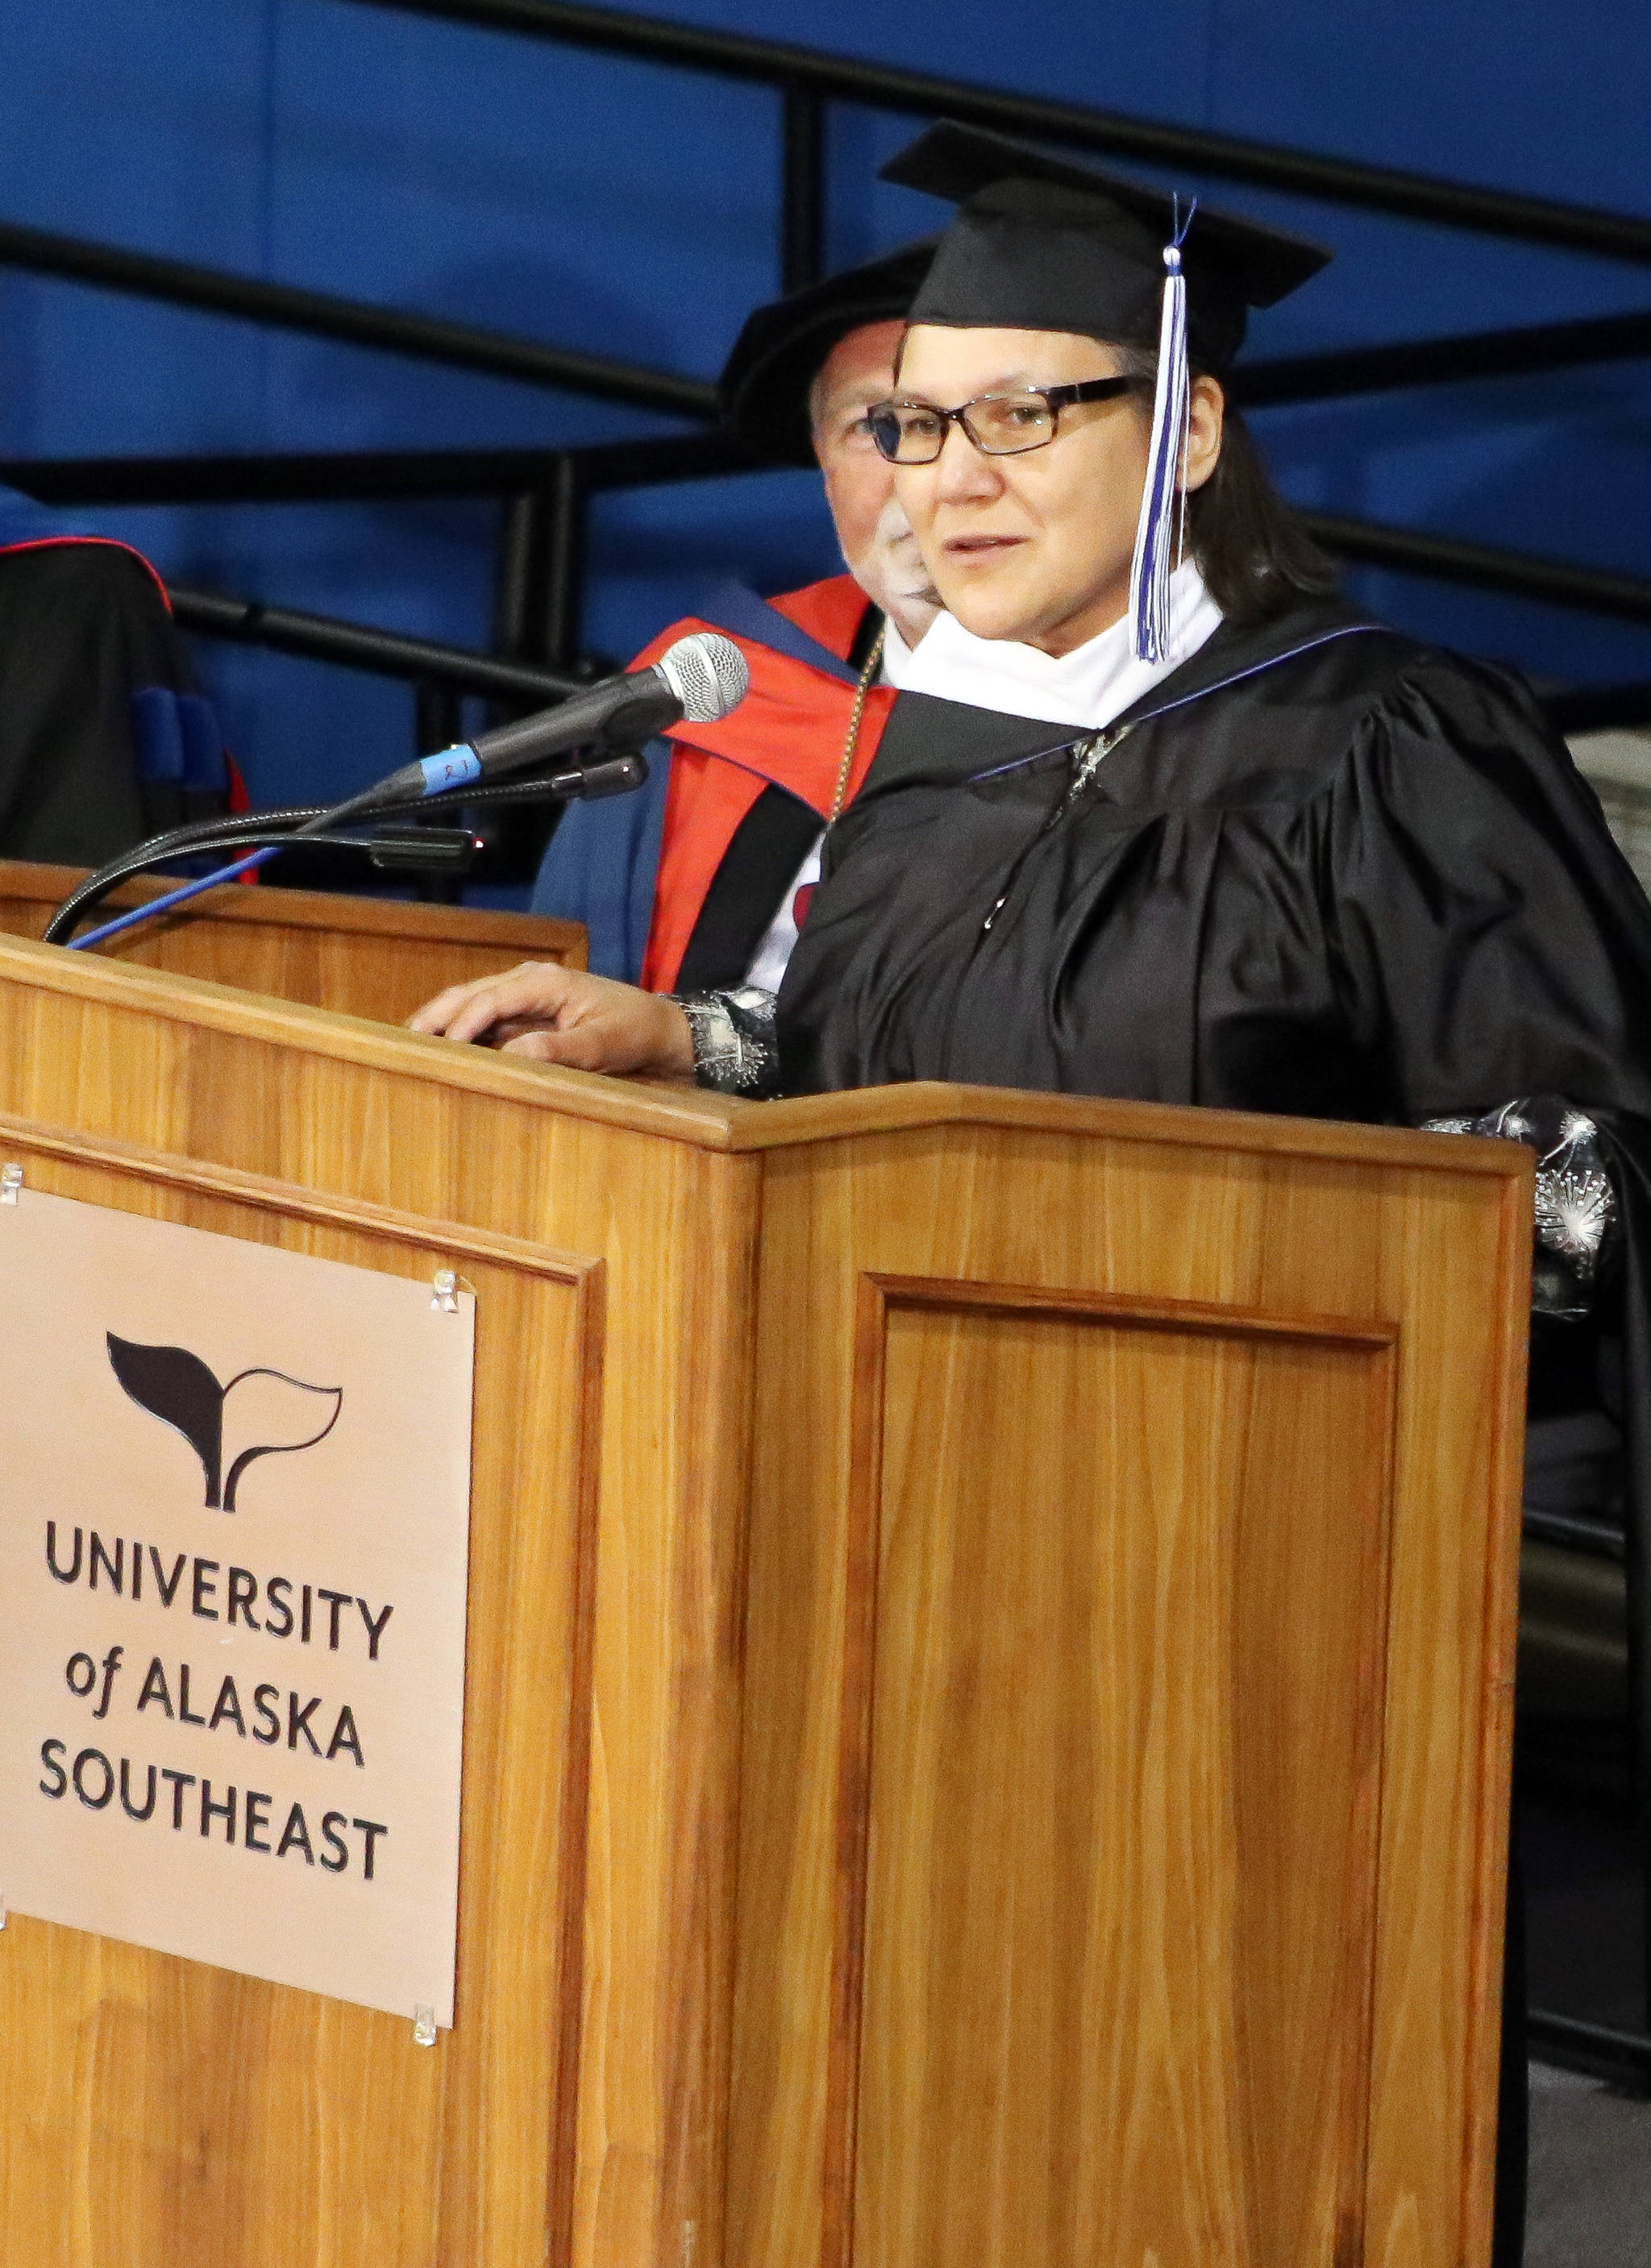 Commencement speaker Valerie Nurr'araaluk Davidson speaks during the University of Alaska Southeast commencement ceremony on Sunday, May 5, 2019. (Erin Laughlin | For the Juneau Empire)